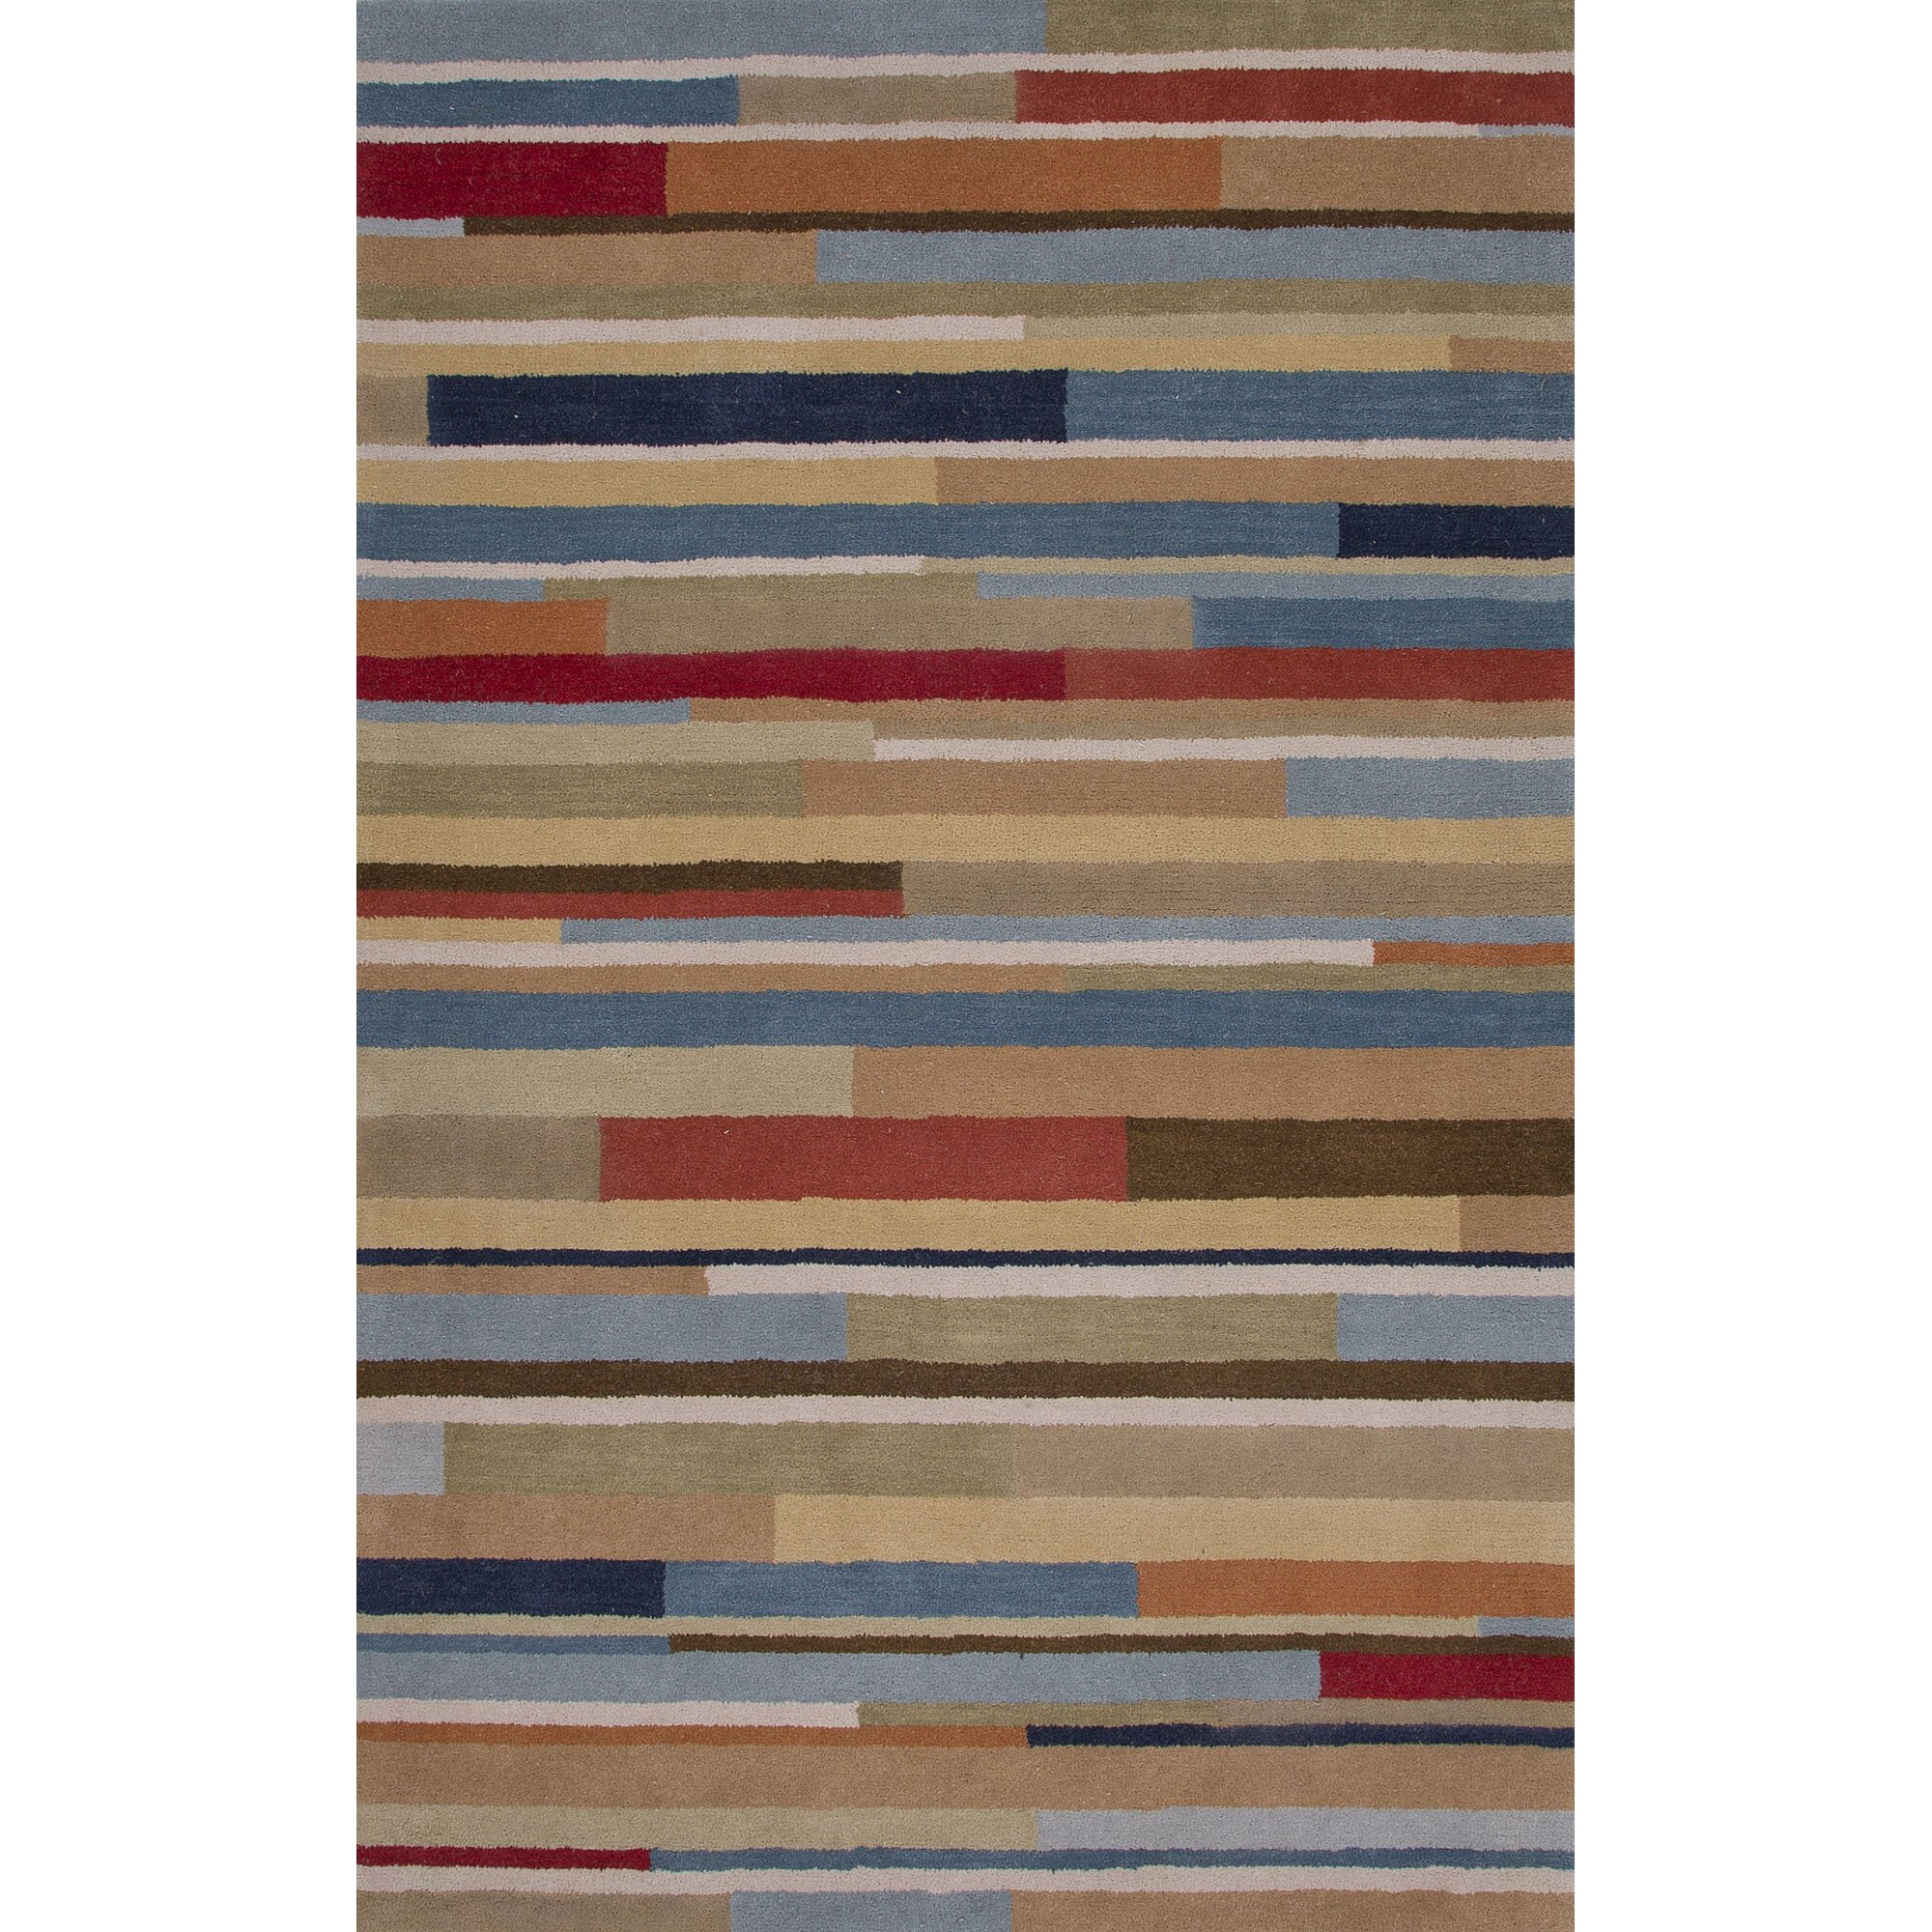 Jaipurliving traverse wool hand tufted blue red area rug for Red and blue area rug